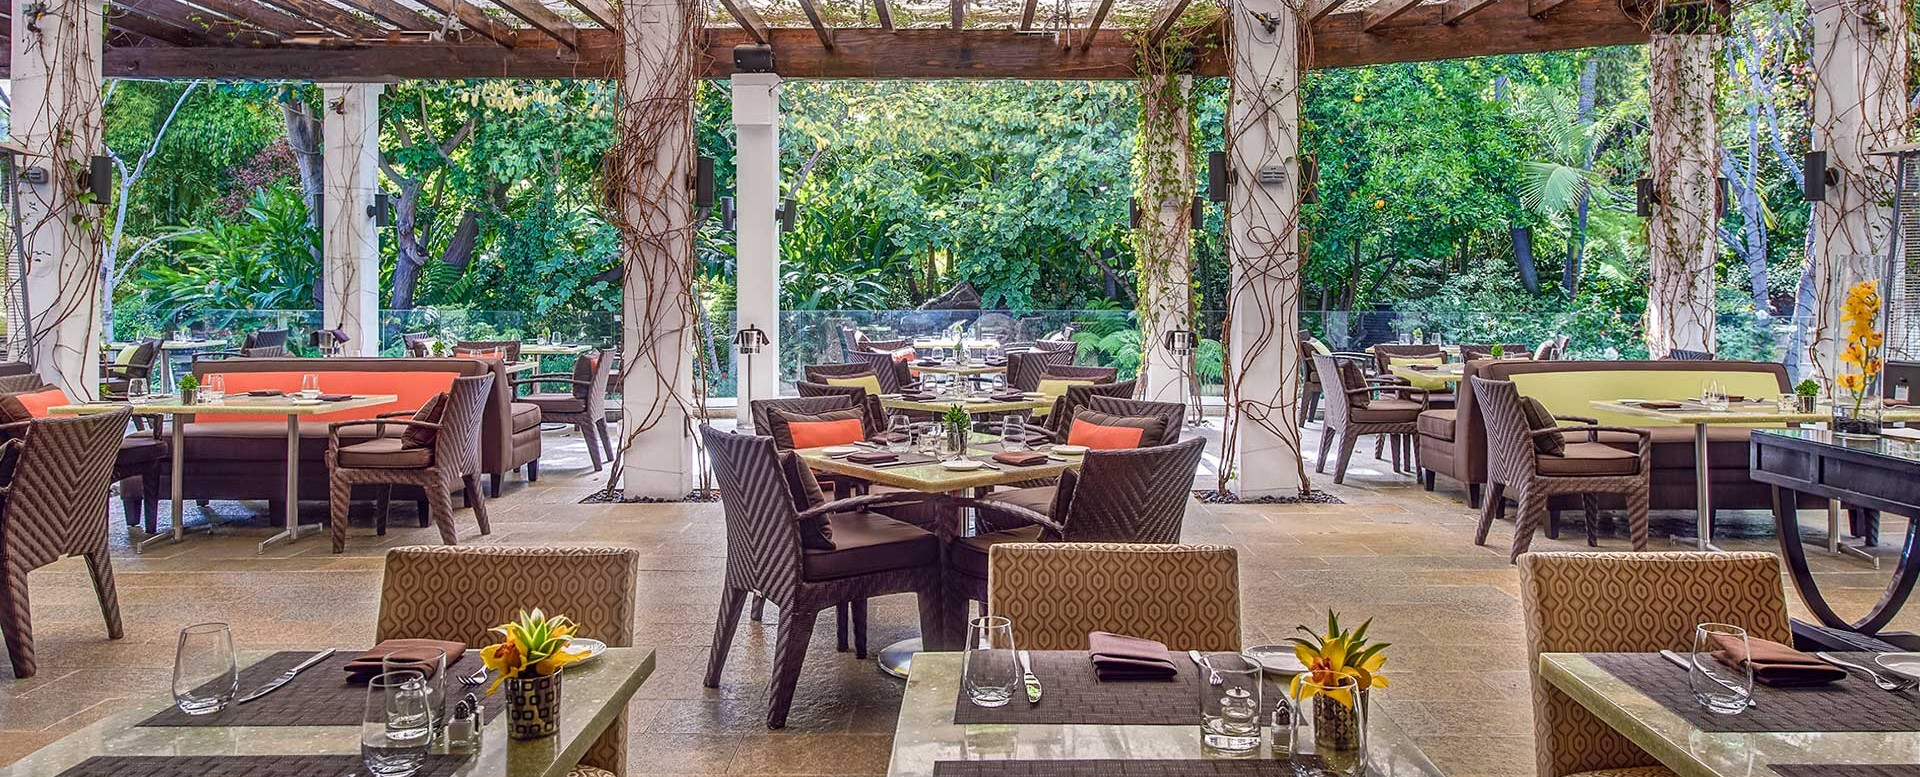 Sunset Marquis Hotel - Cavatina Restaurant